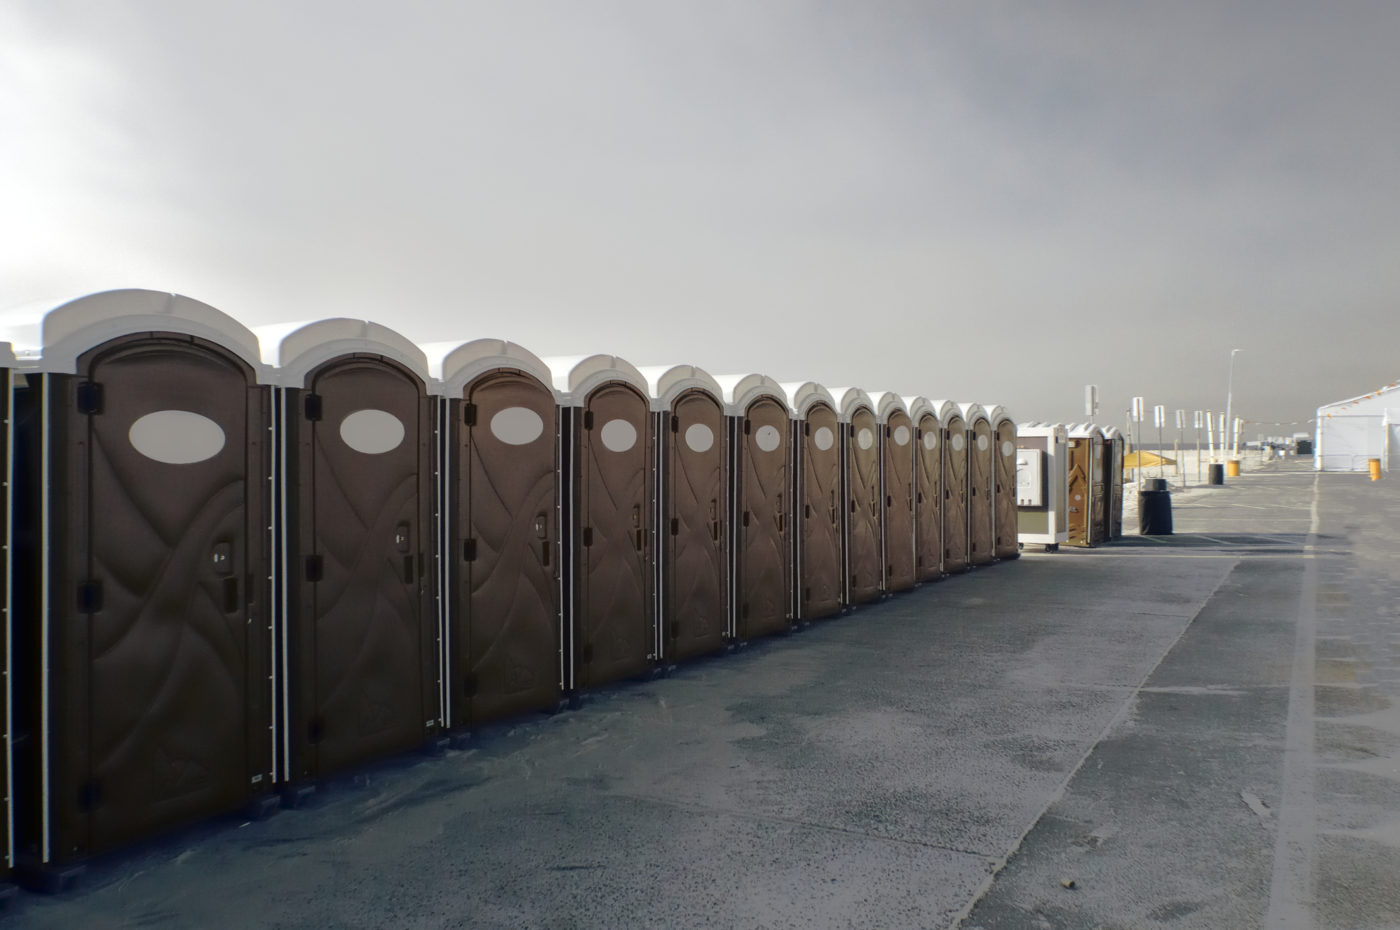 Porta Potty Rental In Tulsa